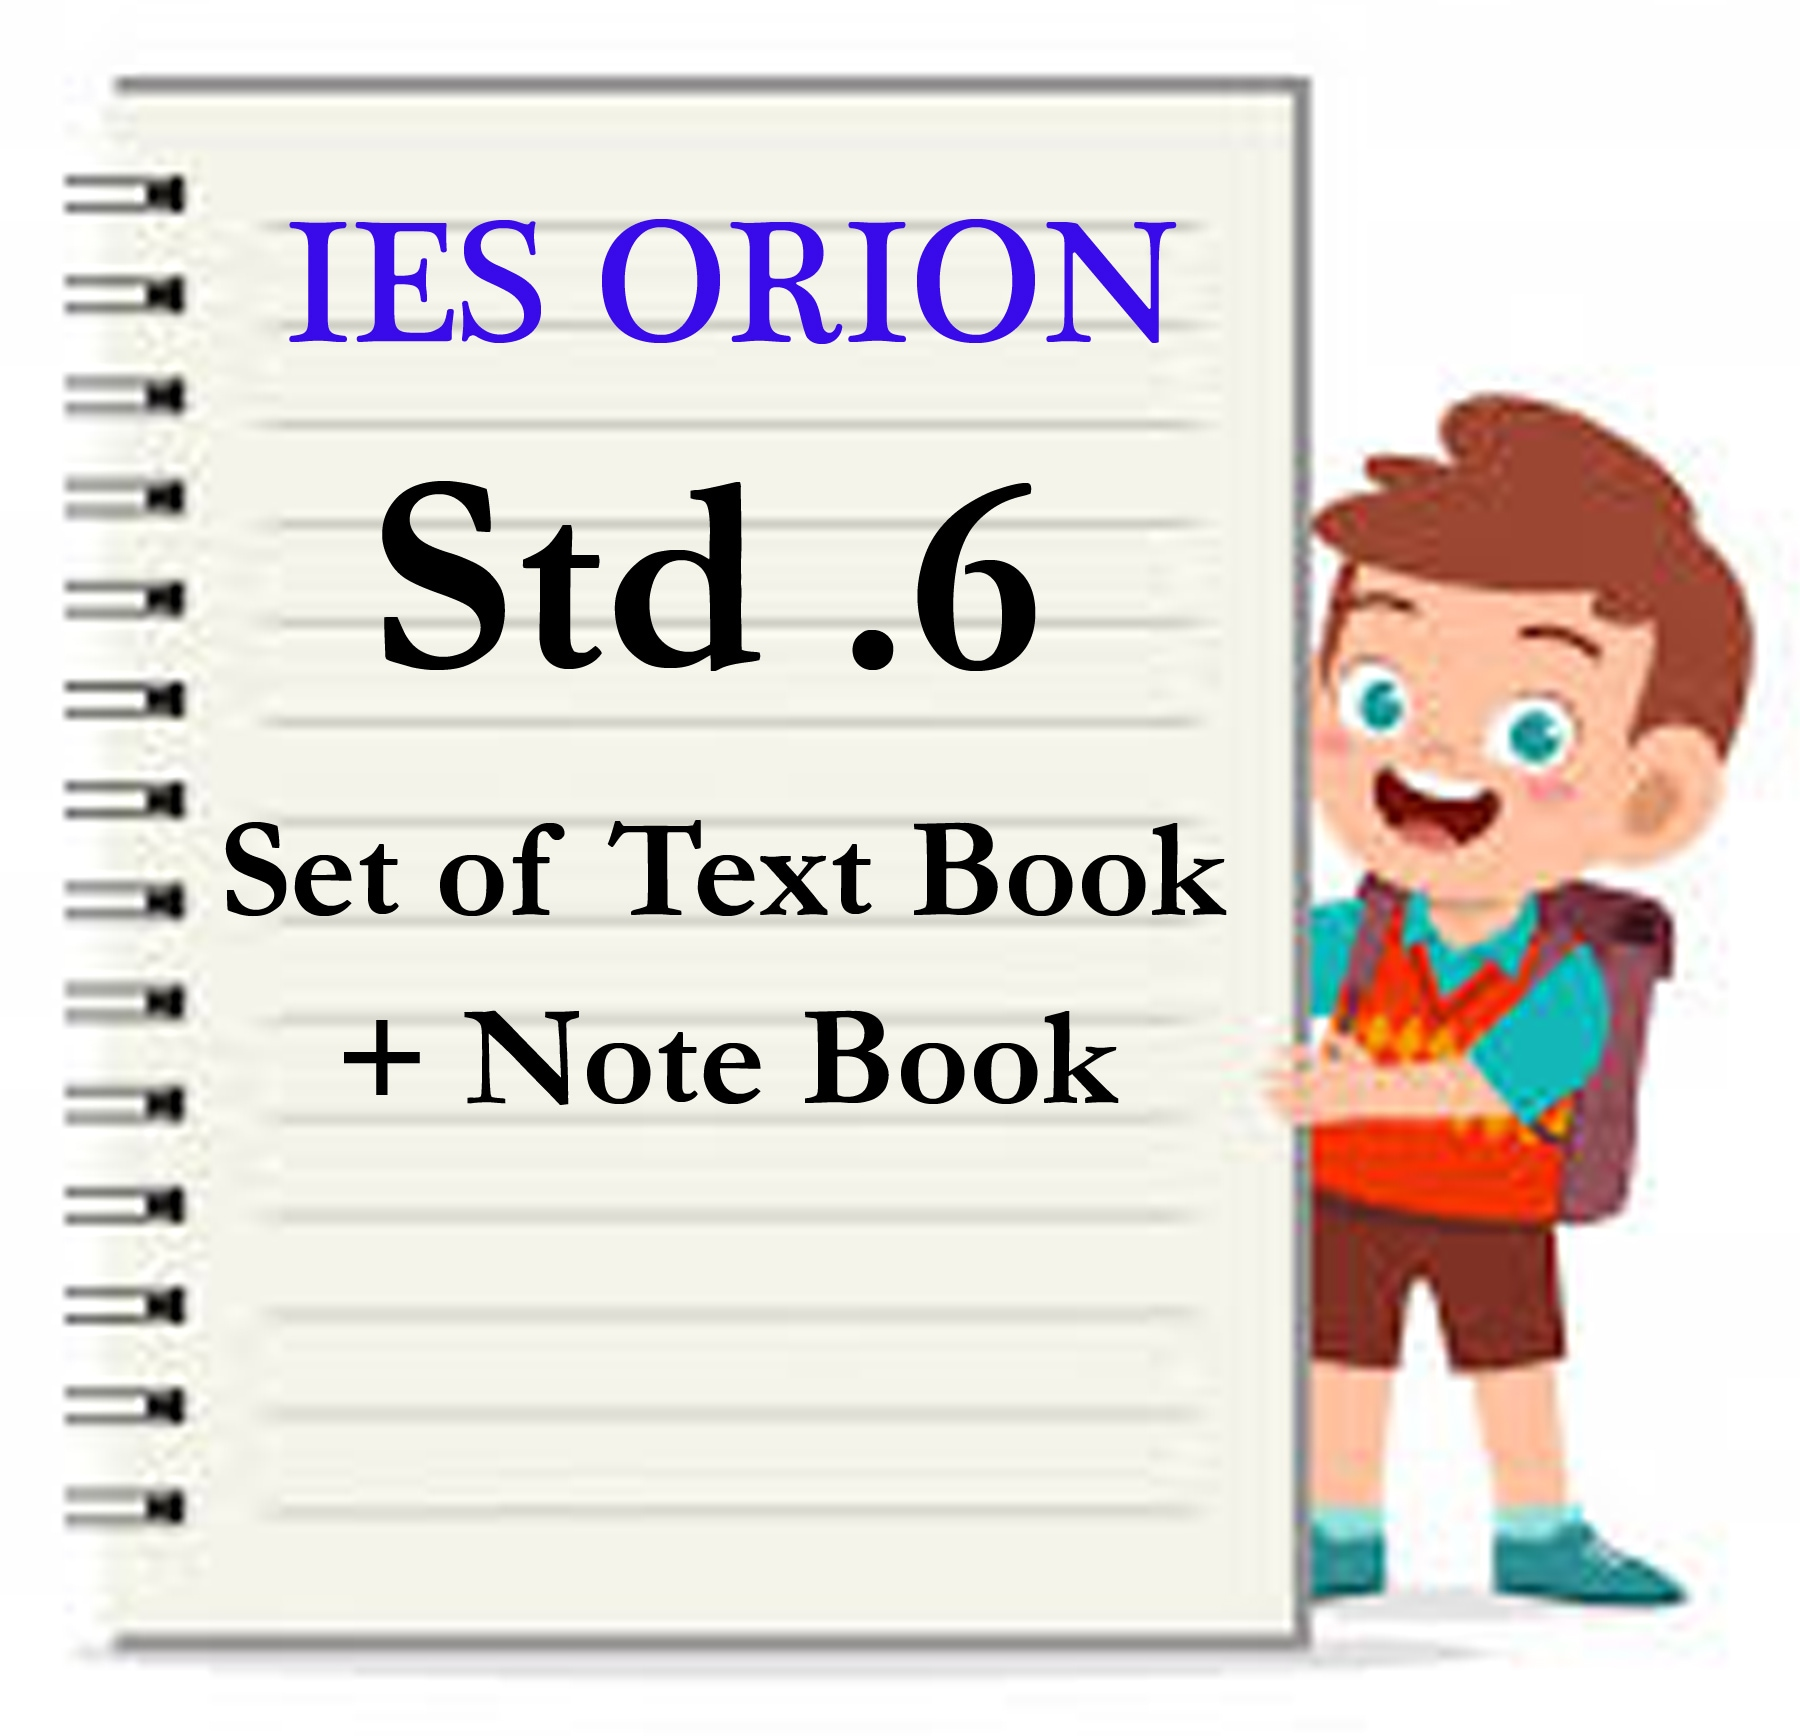 IES ORION STD.6 SET OF TEXT BOOK + NOTE BOOK